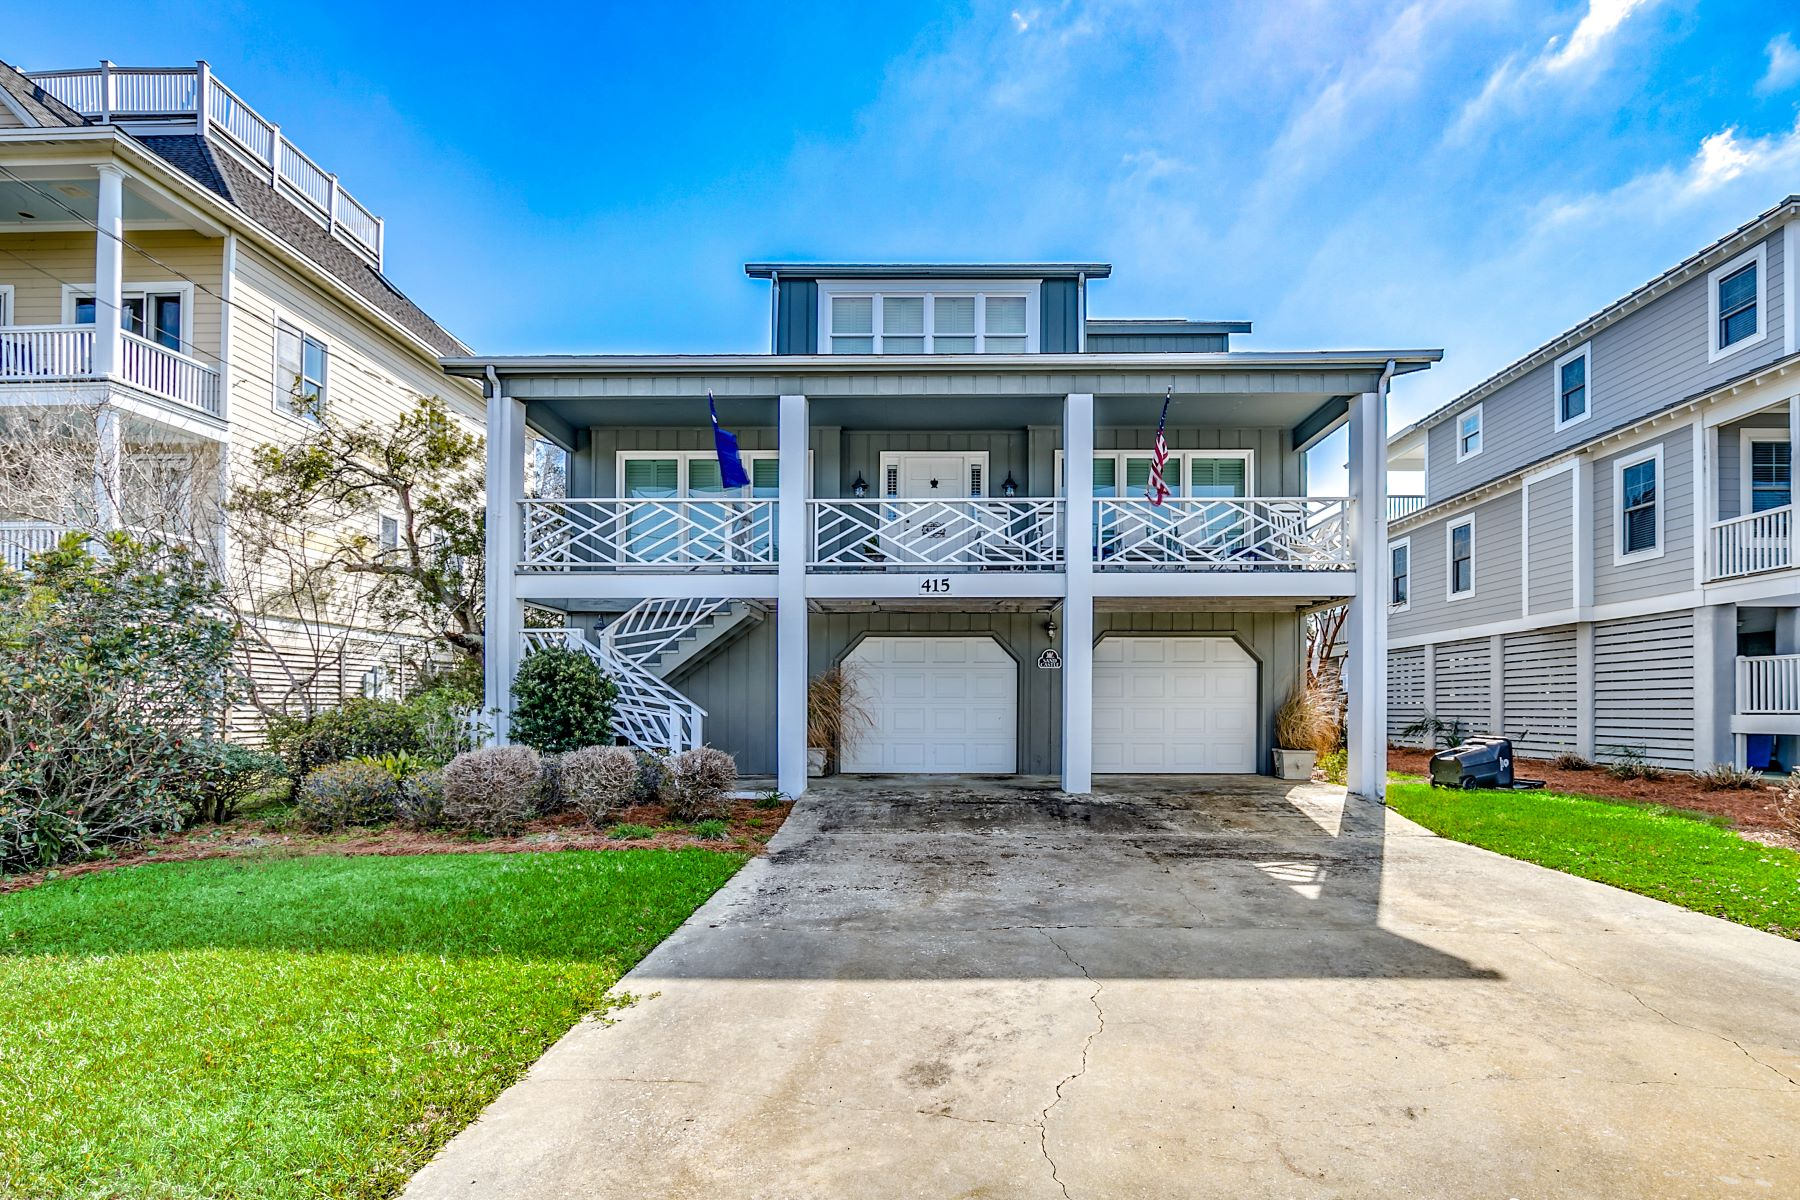 Single Family Homes for Sale at 415 Sportsman Dr., Pawleys Island, Sc, 29585 415 Sportsman Dr. Pawleys Island, South Carolina 29585 United States